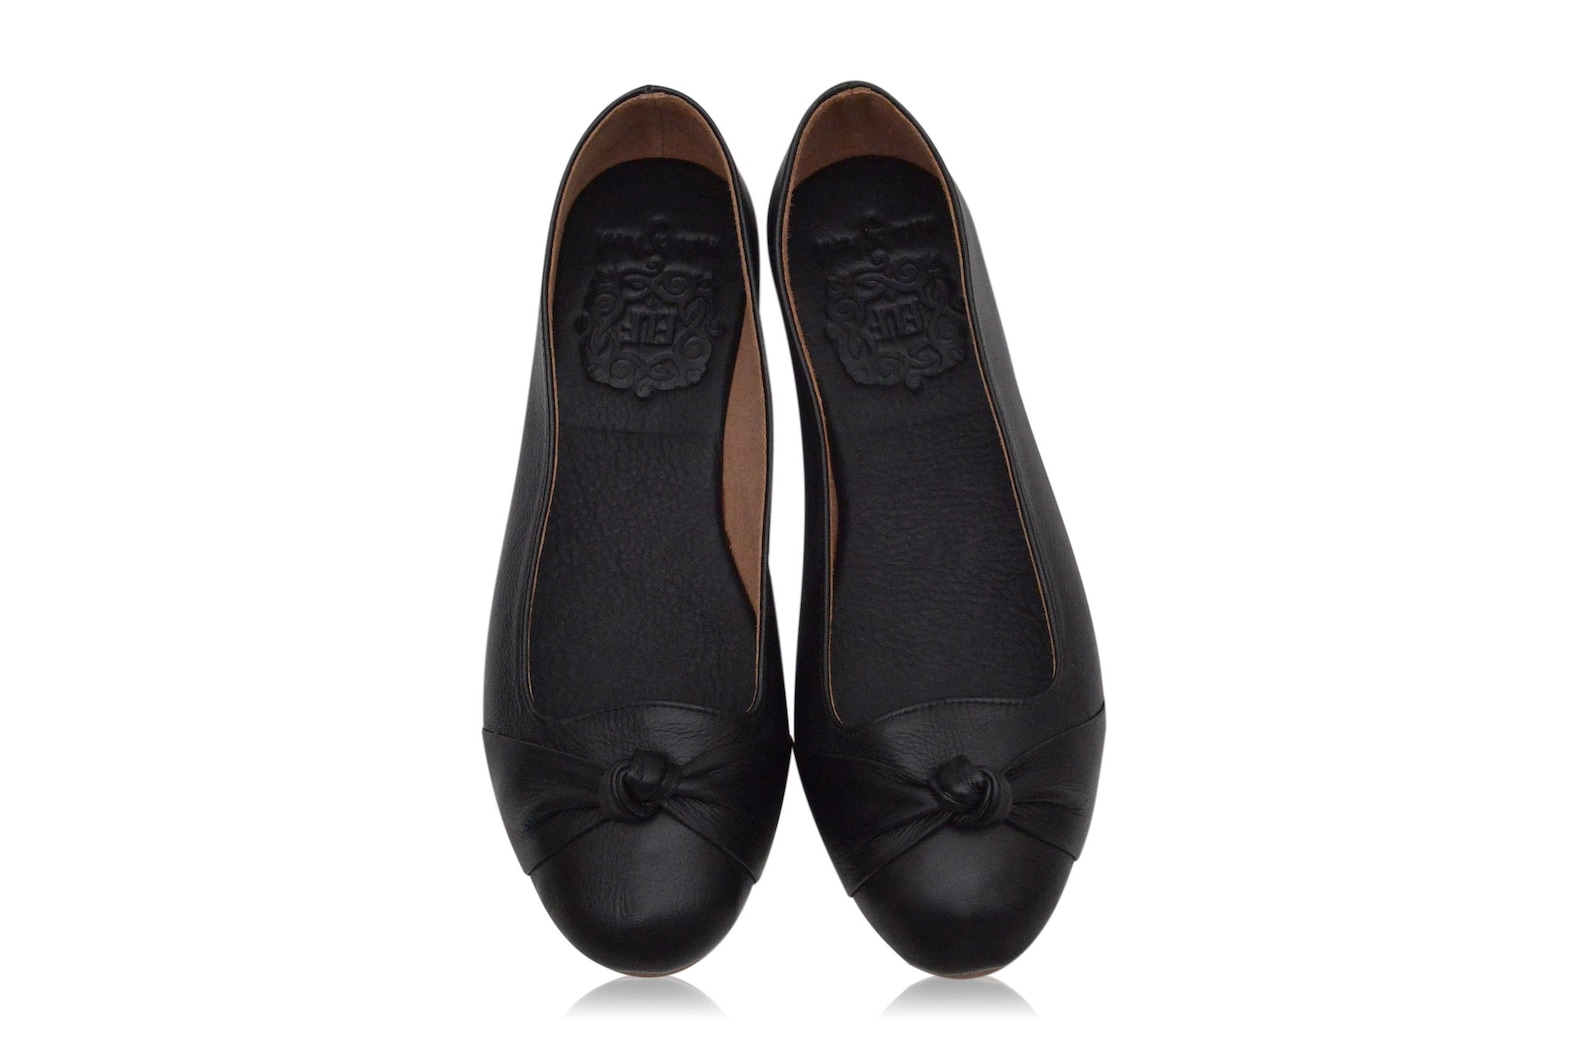 panama. black shoes / leather ballet flats / women shoes / black leather flats / women flats. sizes 35-43. available in differen